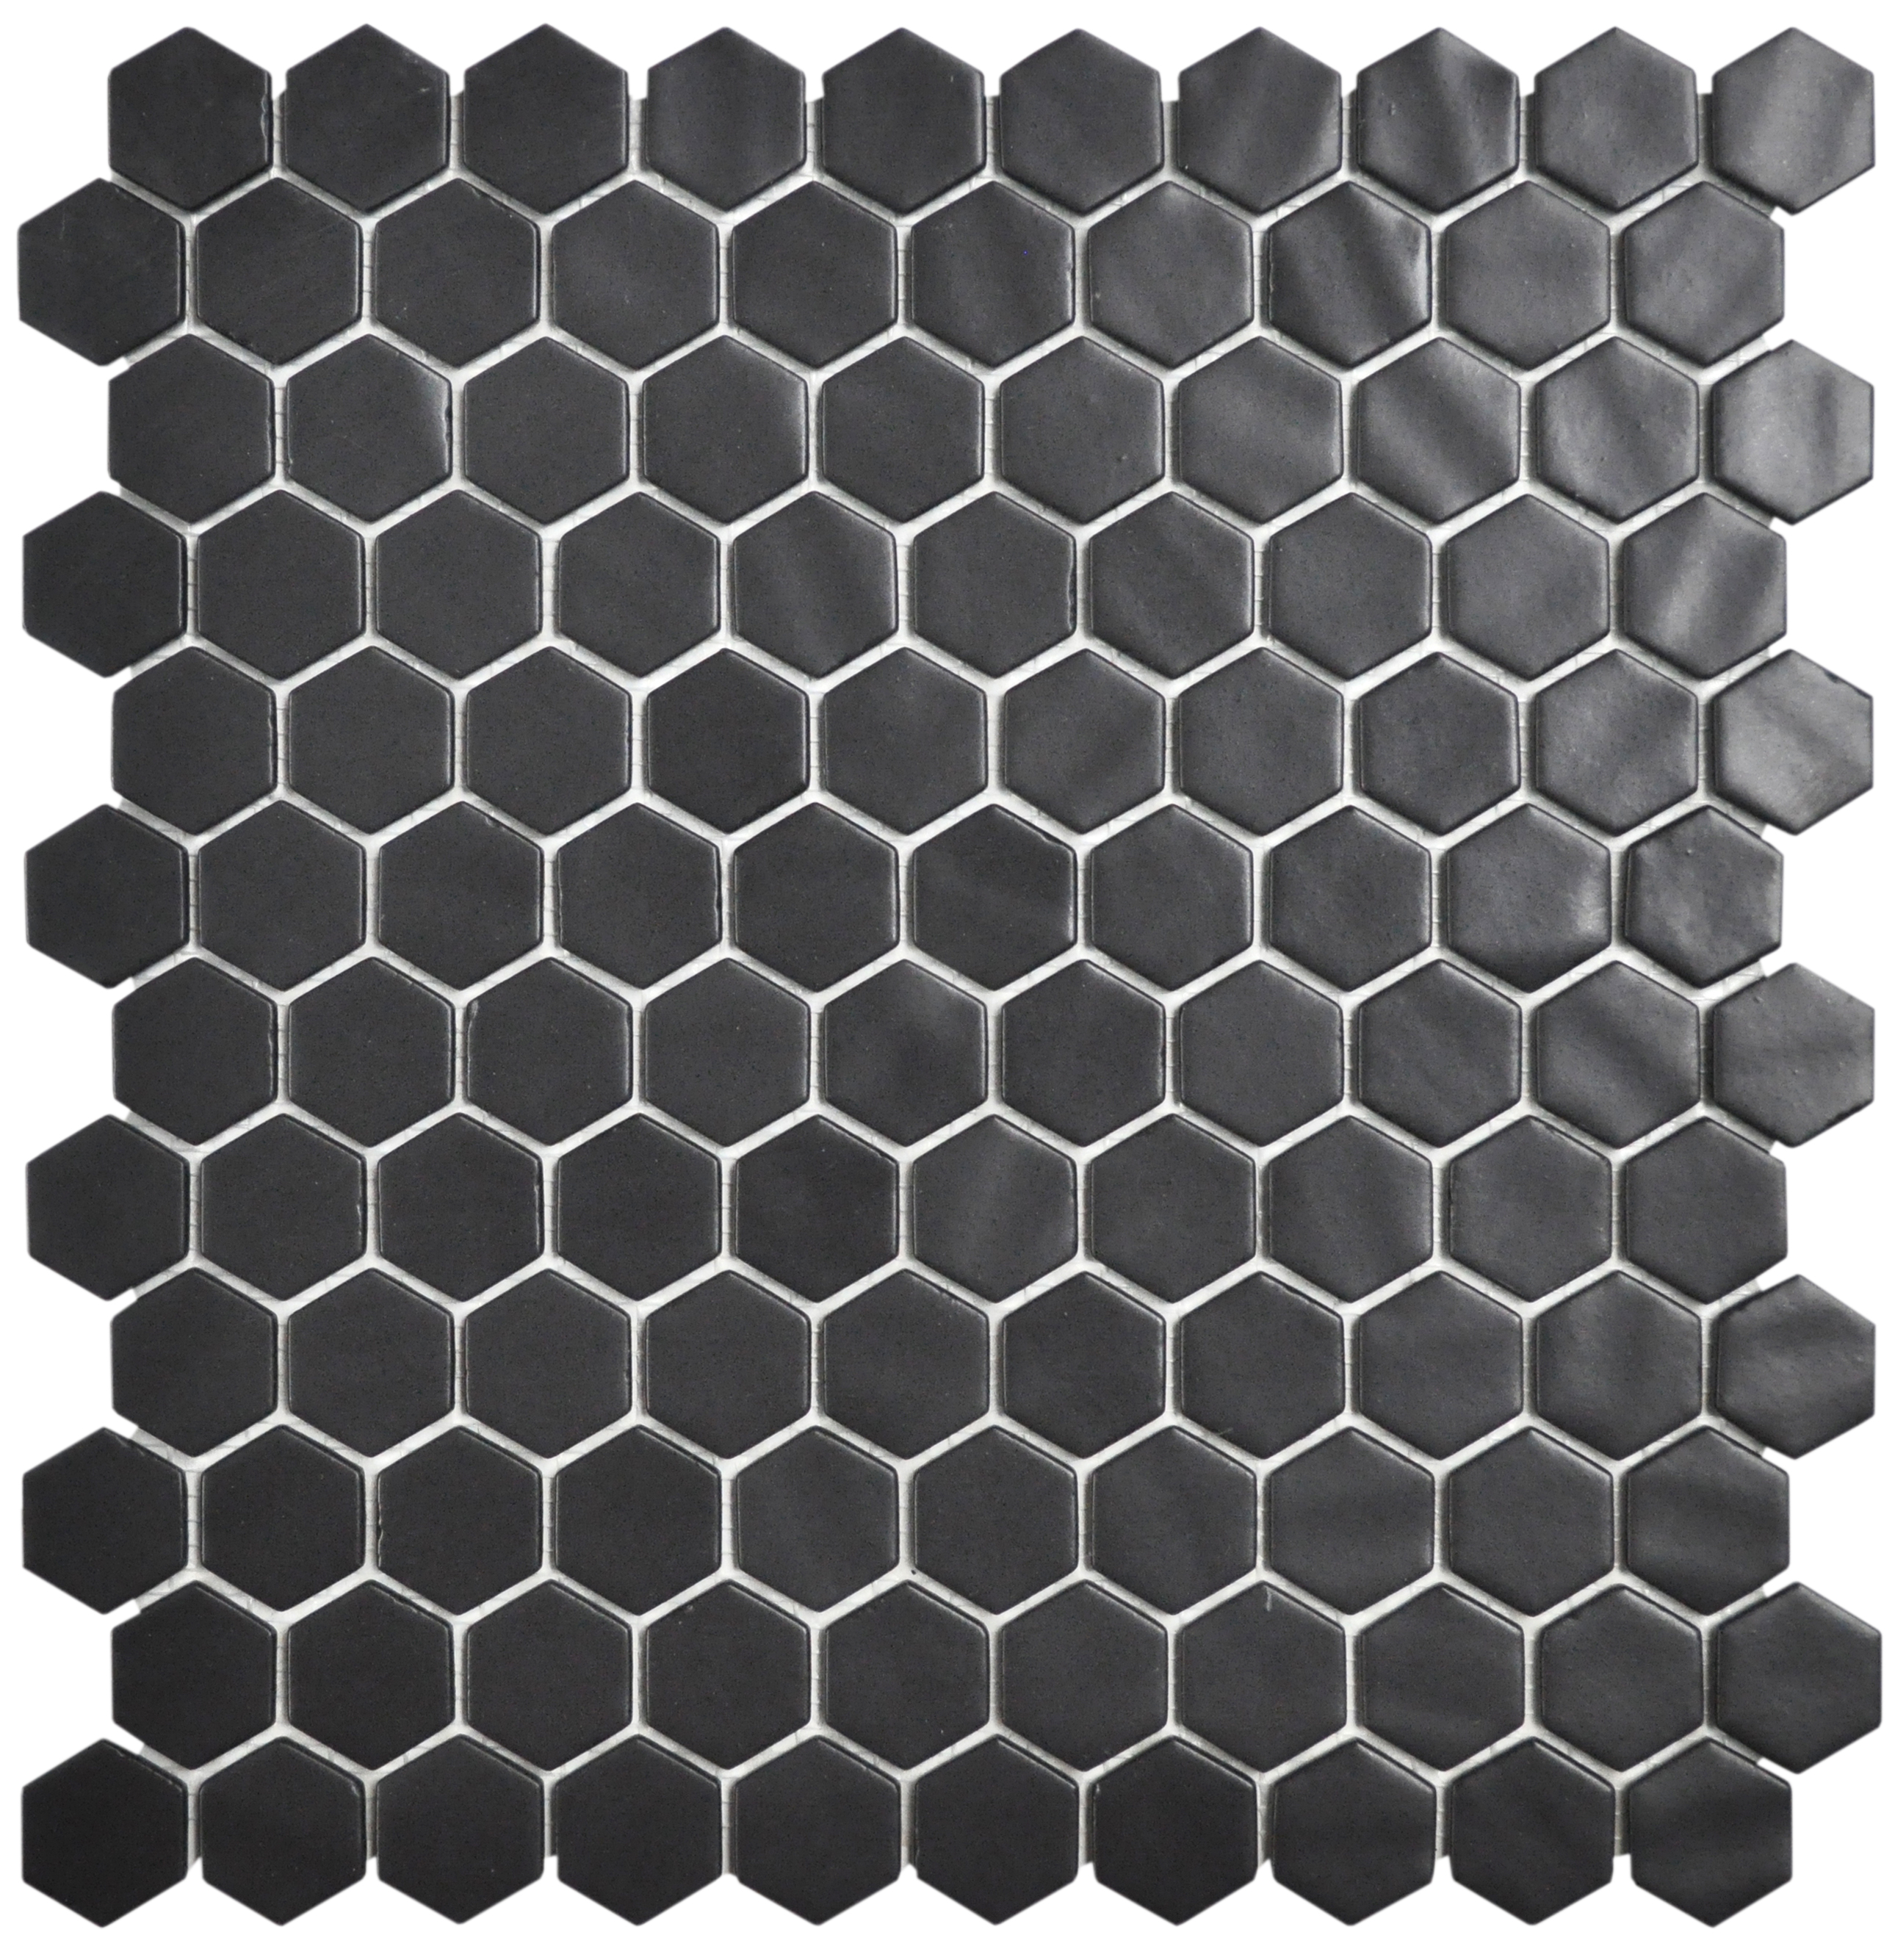 Nature Glass Hexagon Black Petraslate Tile Amp Stone Is